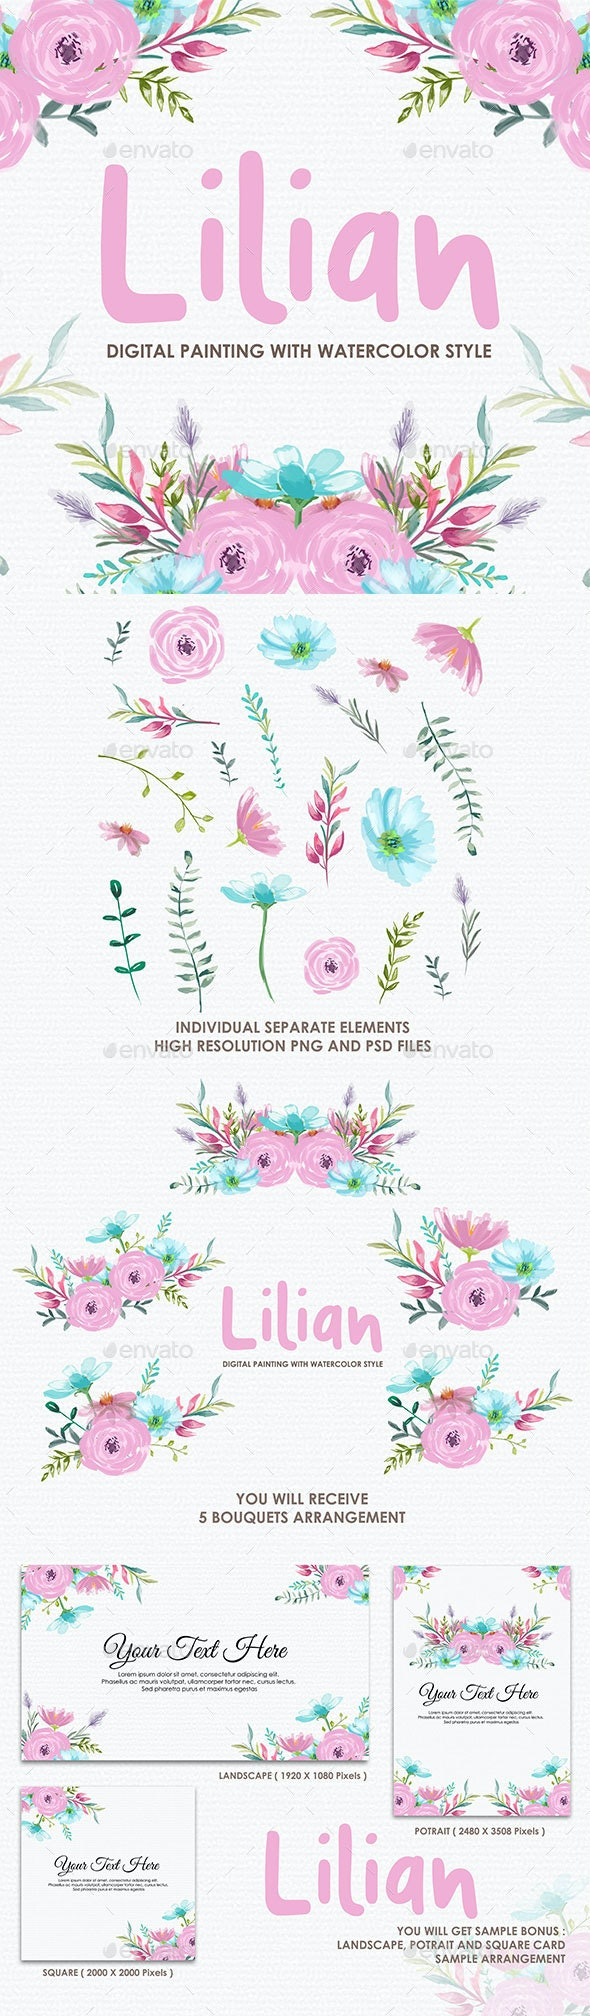 Lilian - Watercolor Digital Painting Floral Flowers Style - Decorative Graphics